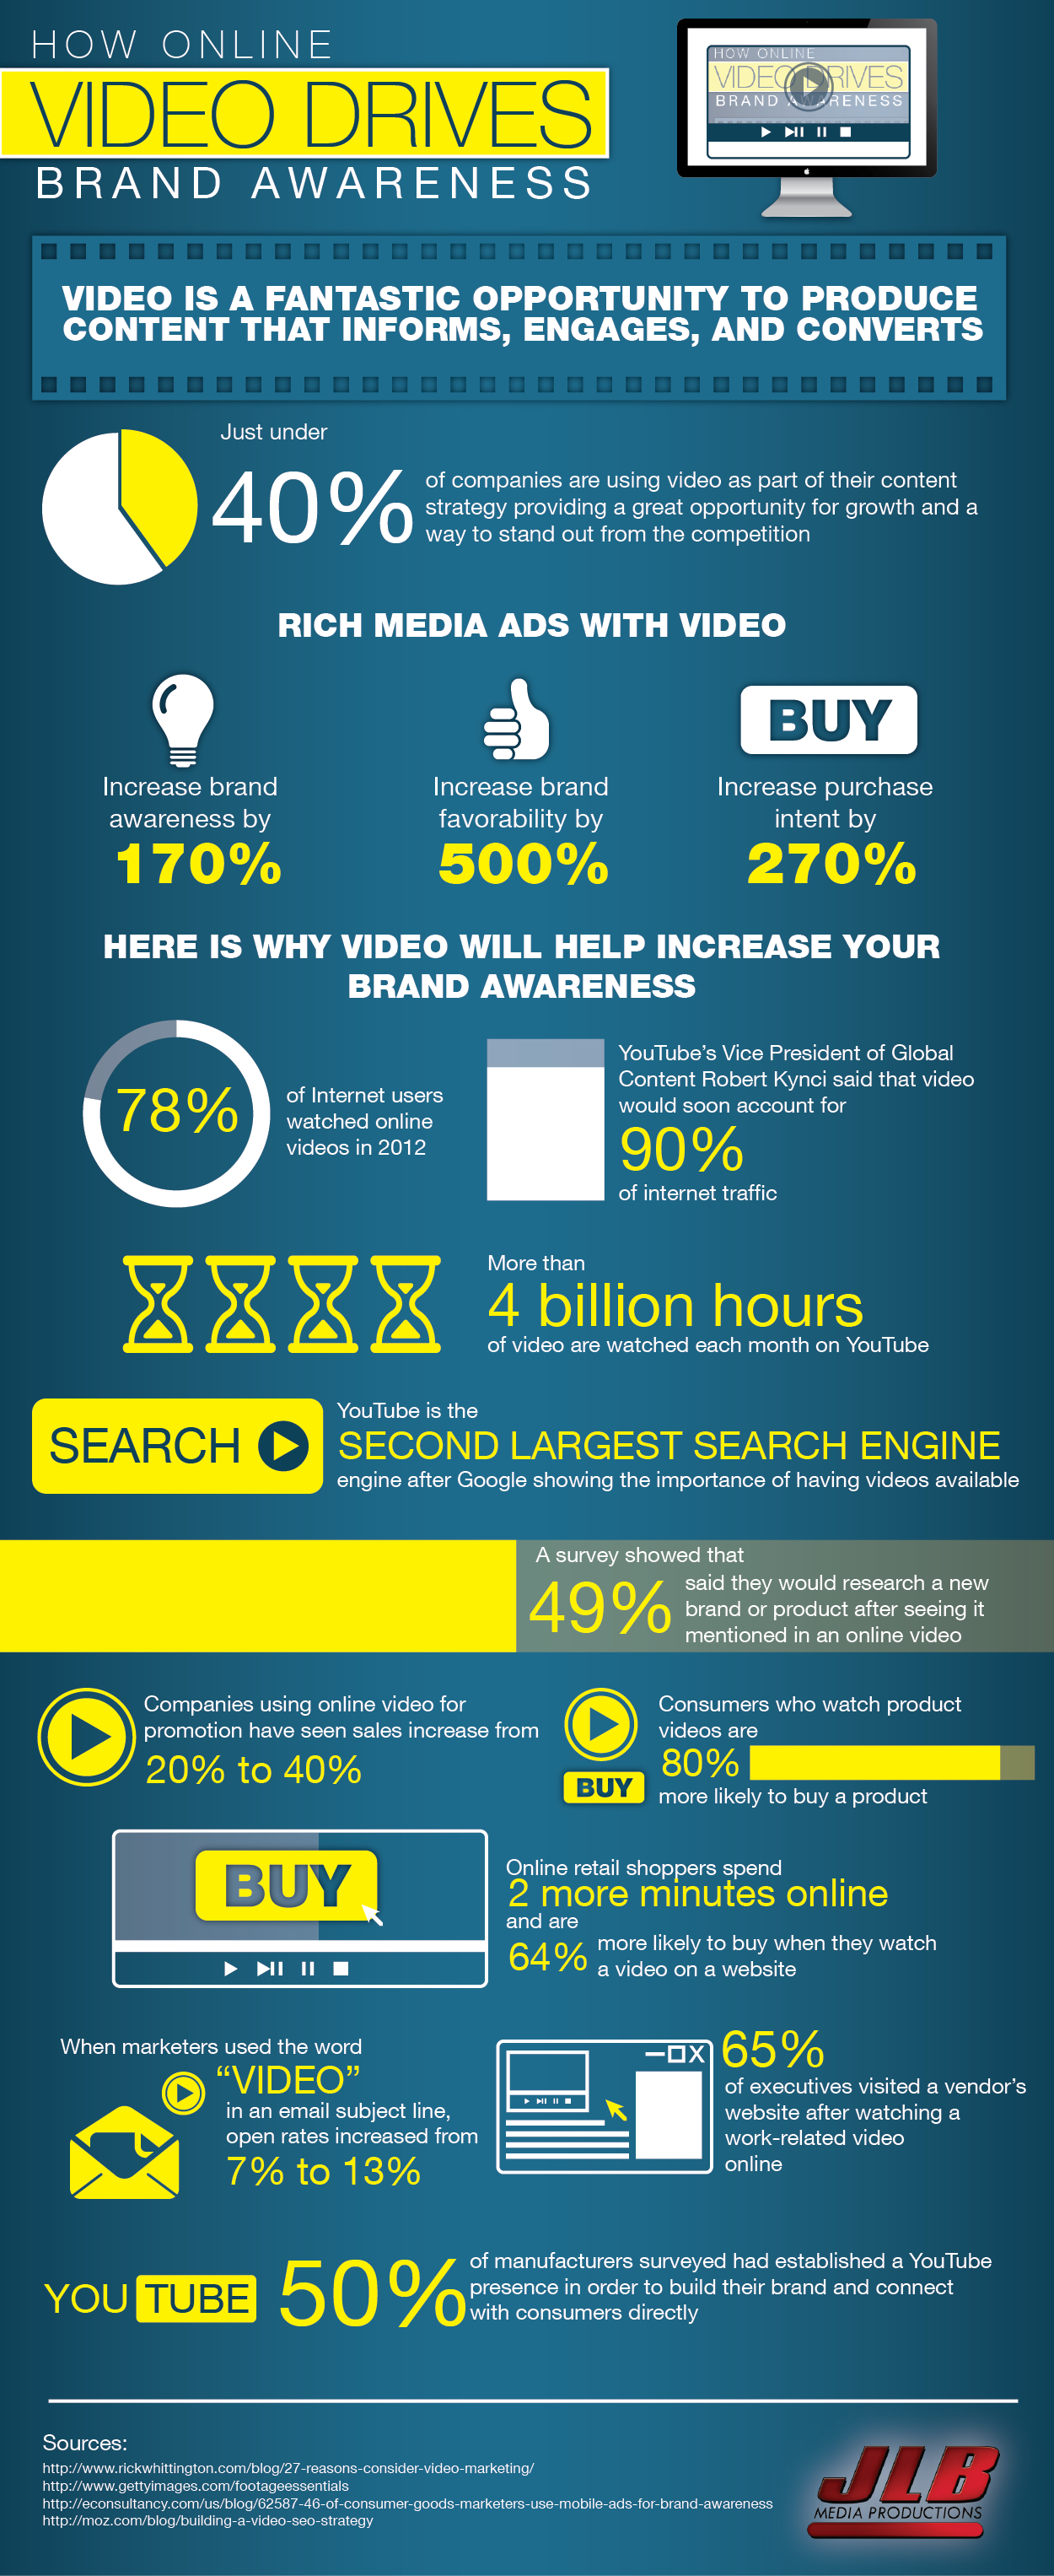 http://visual.ly/how-online-video-drives-brand-awareness